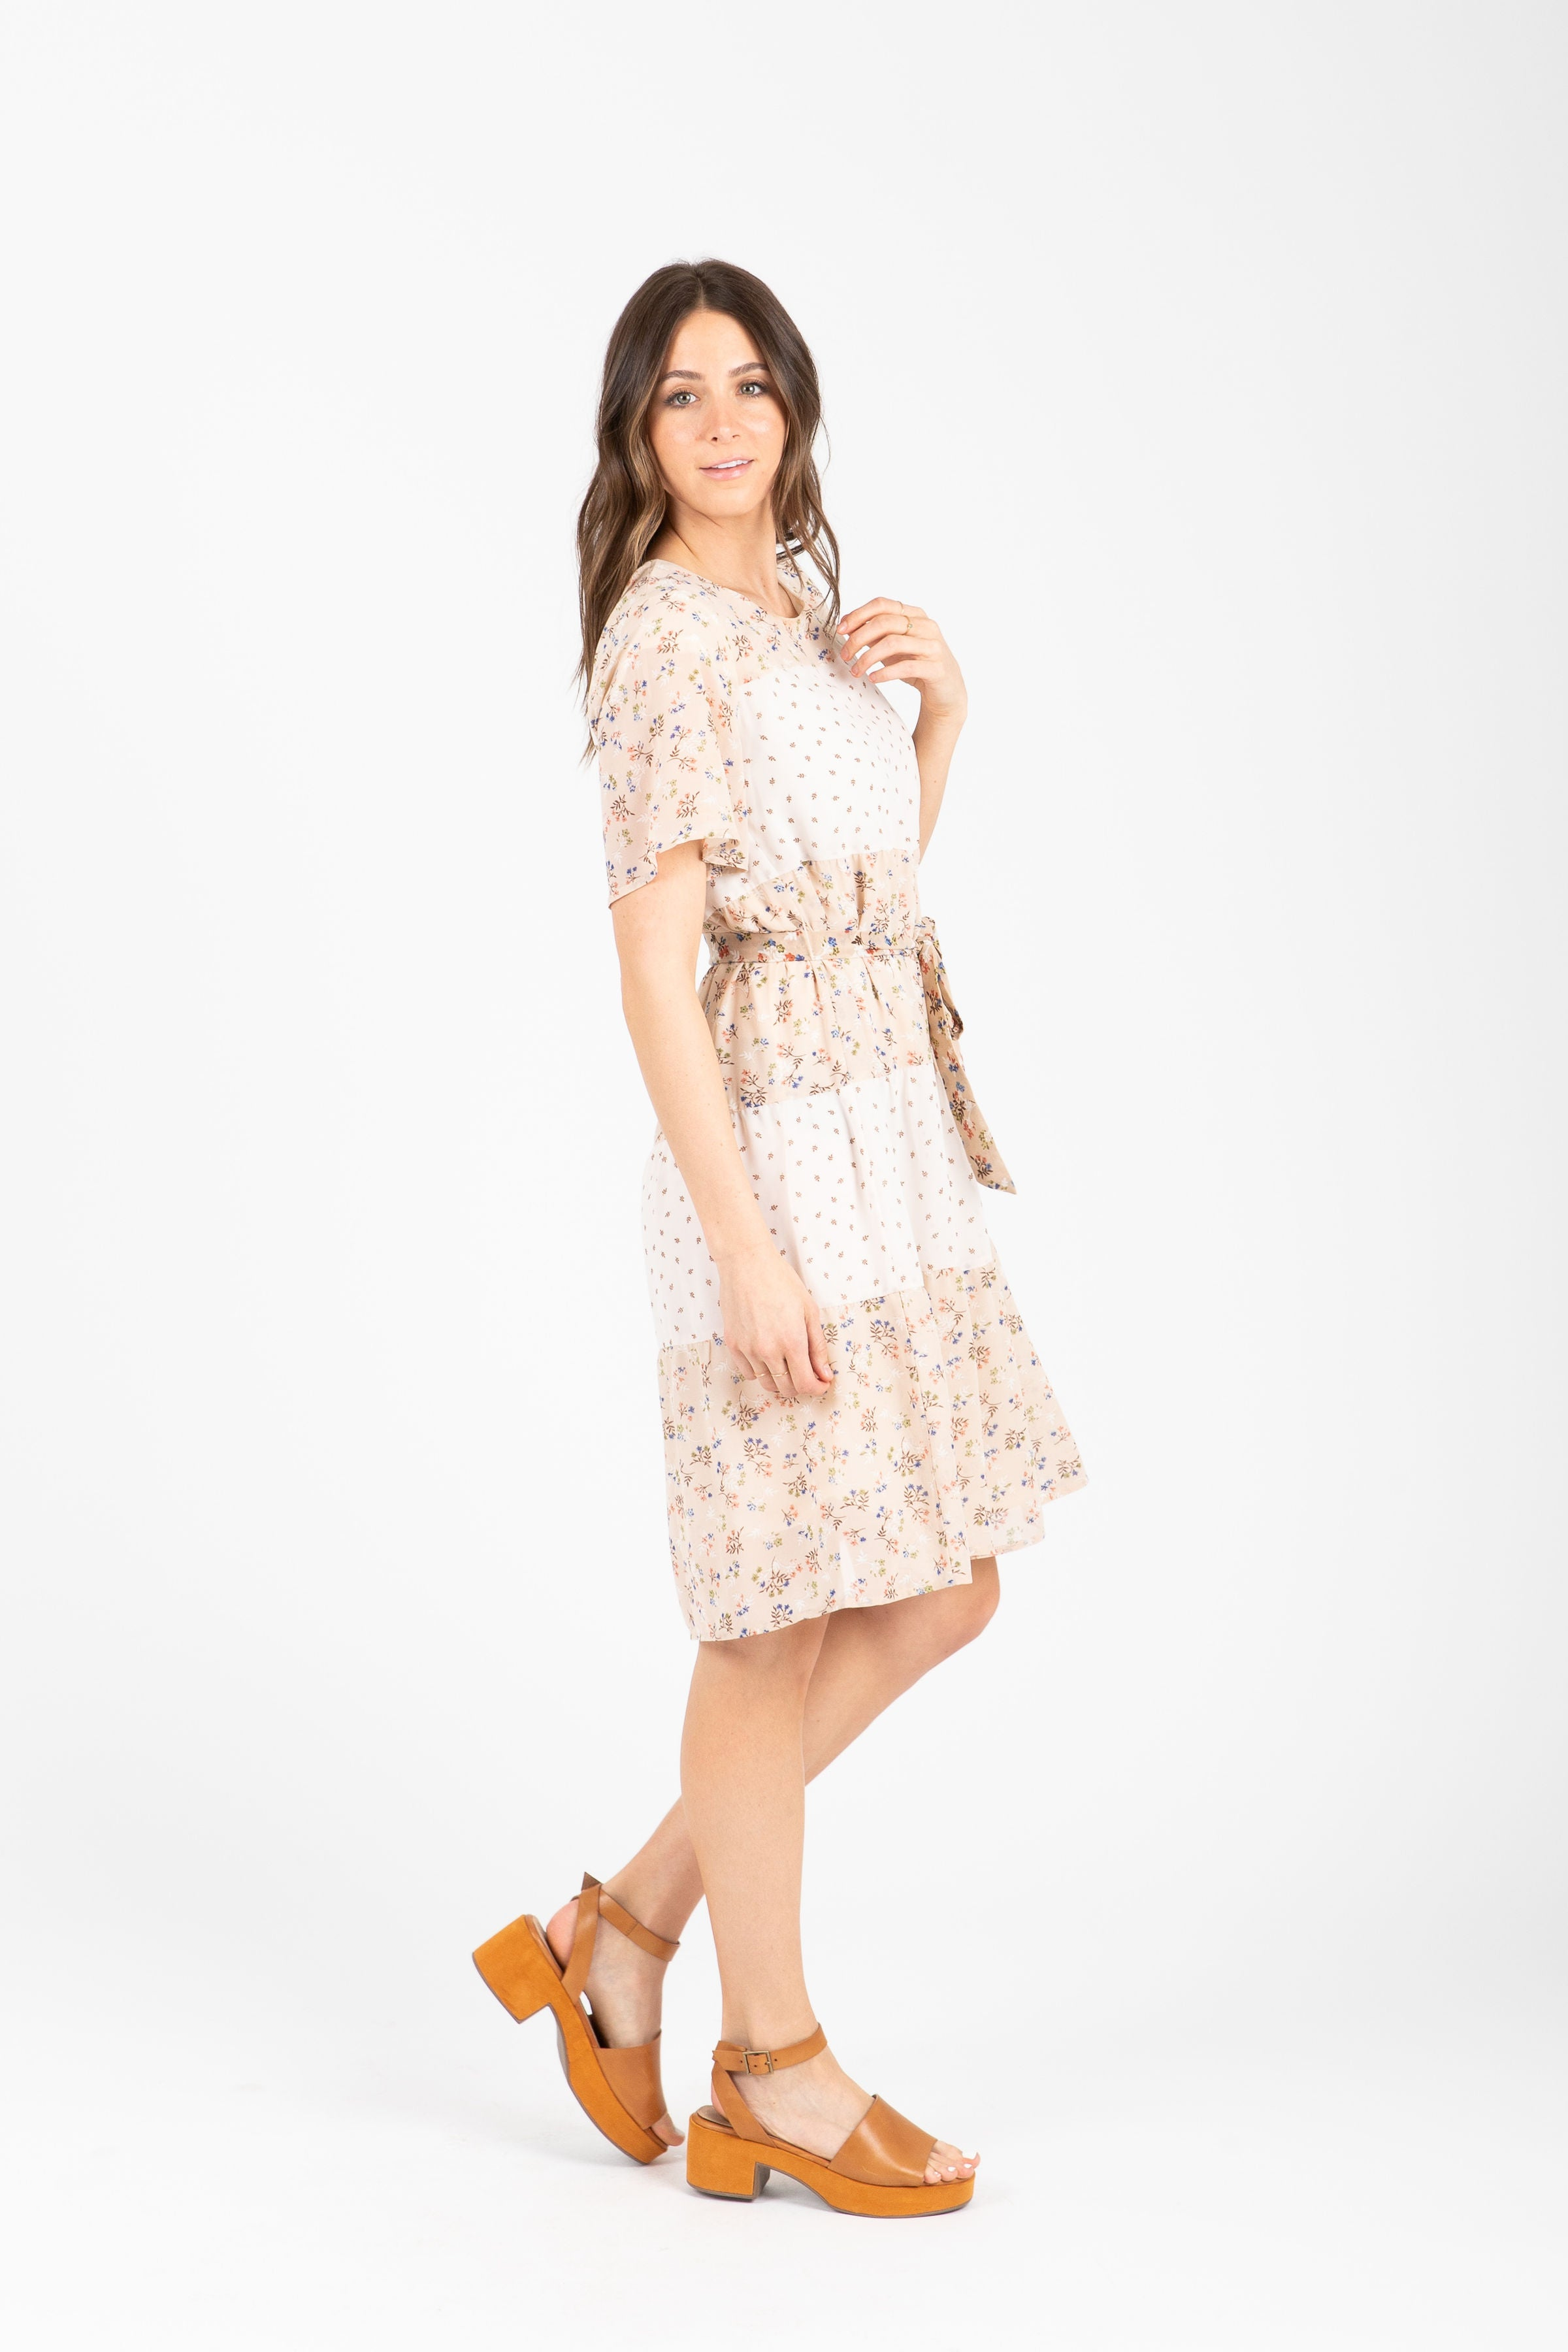 The Flash Tiered Contrast Dress in Taupe